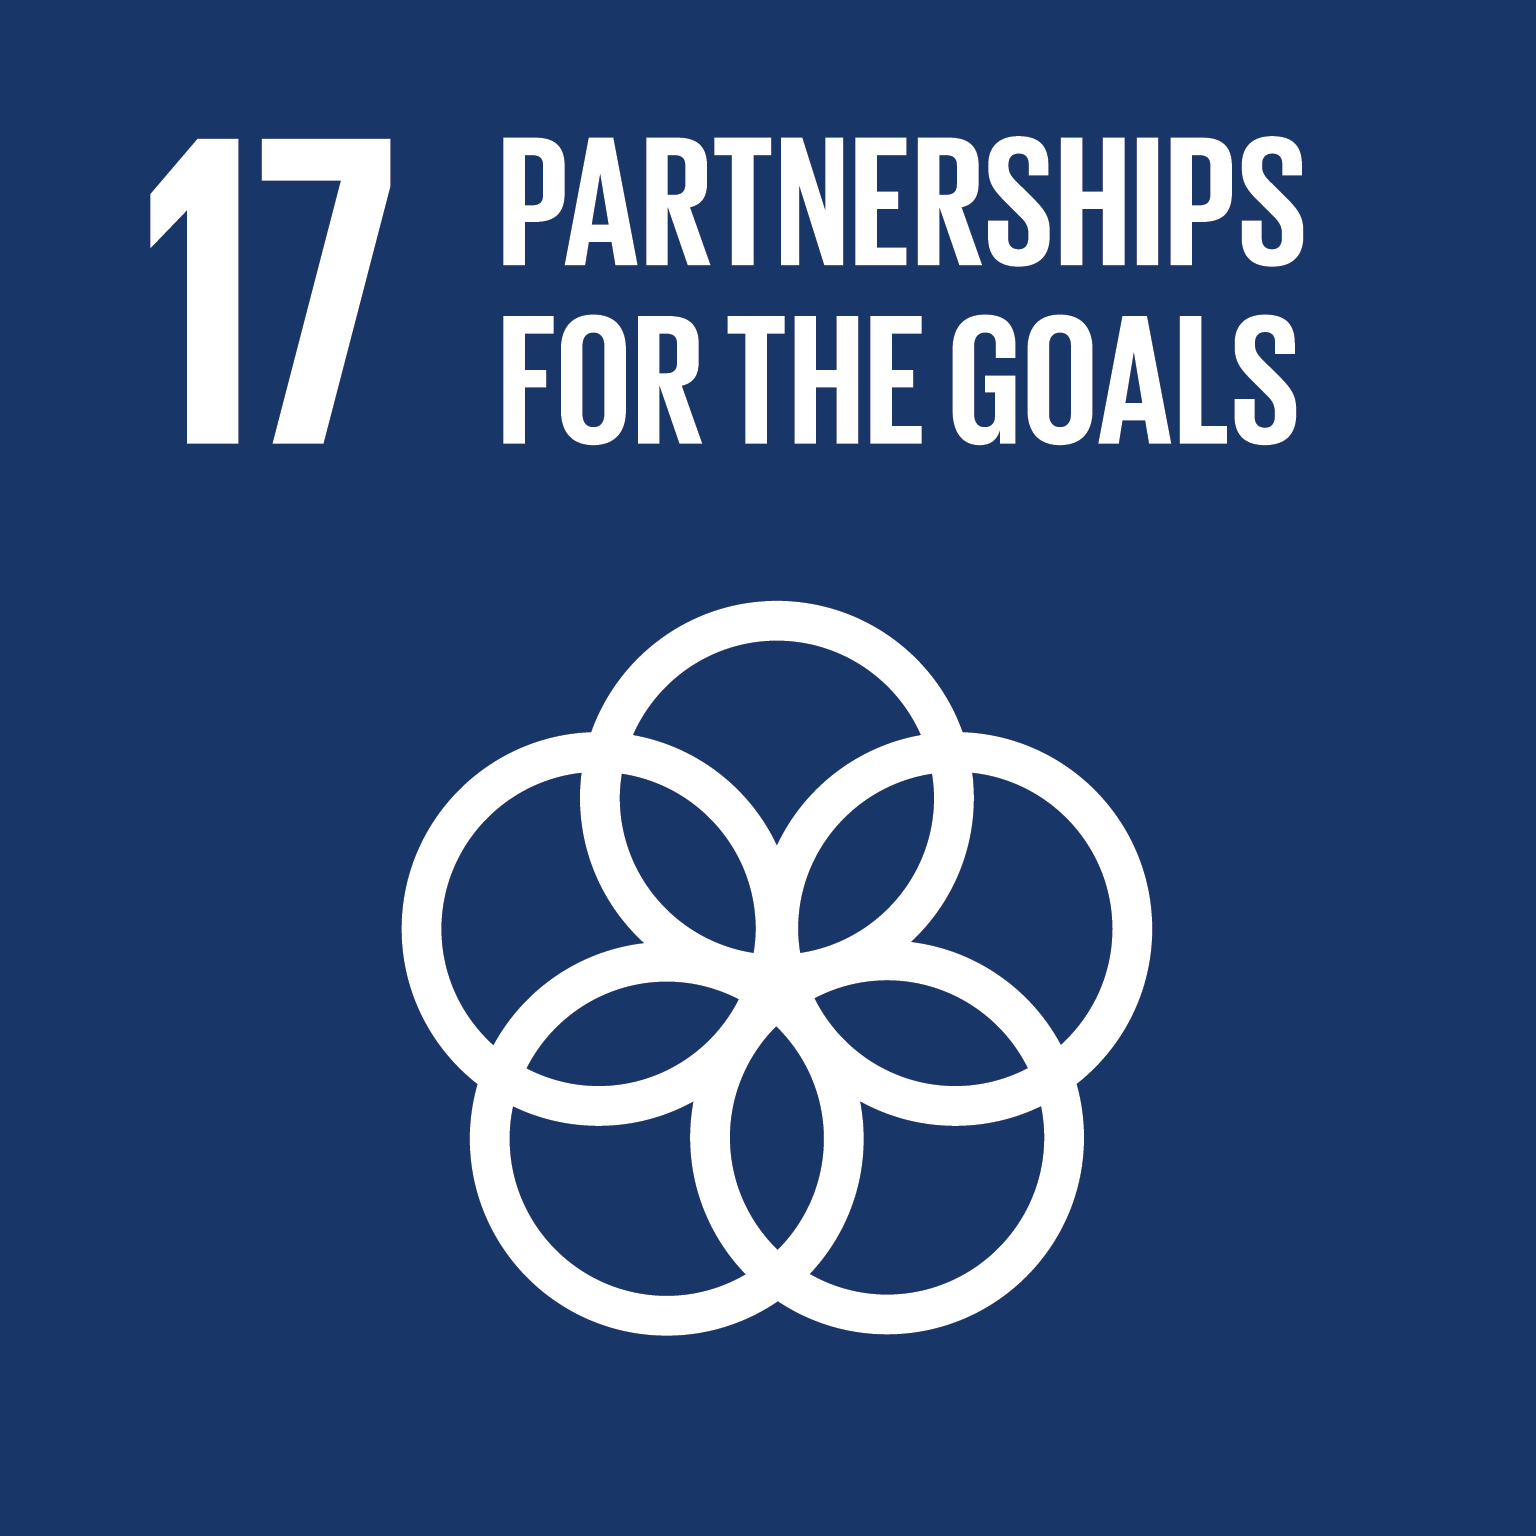 Goal 17 | Department of Economic and Social Affairs